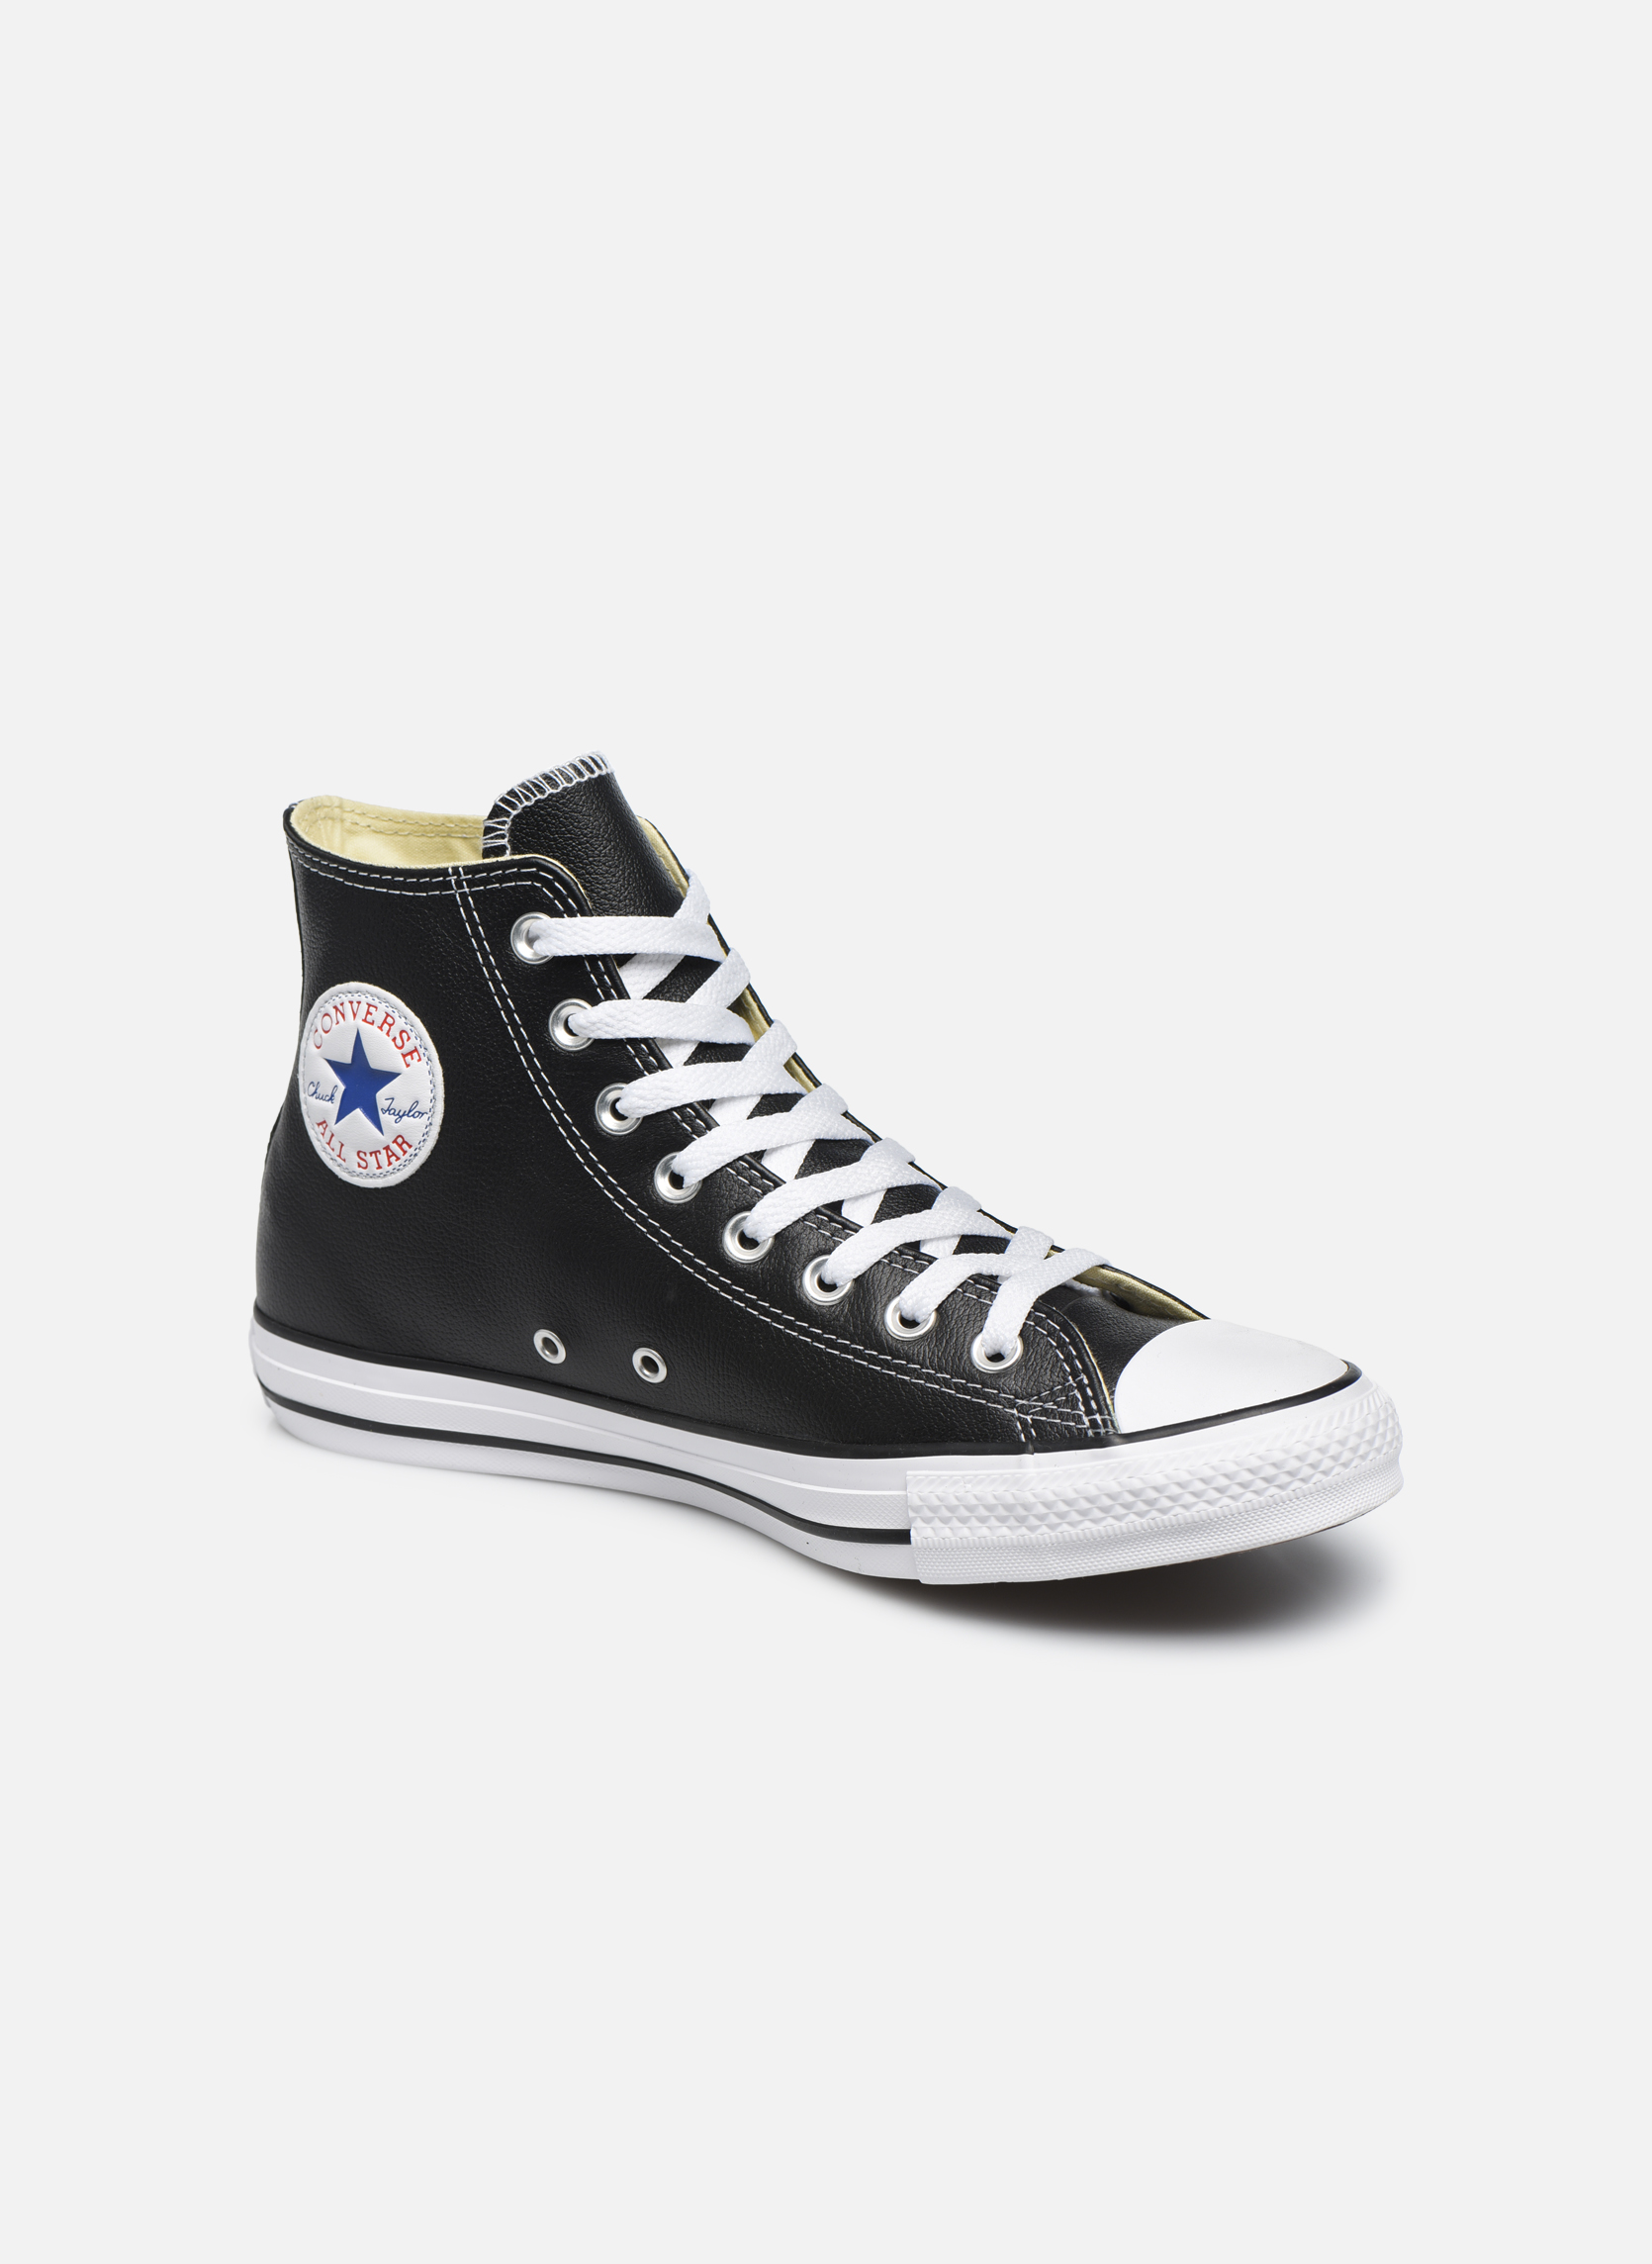 Converse Chuck Taylor All Star Leather Hi M